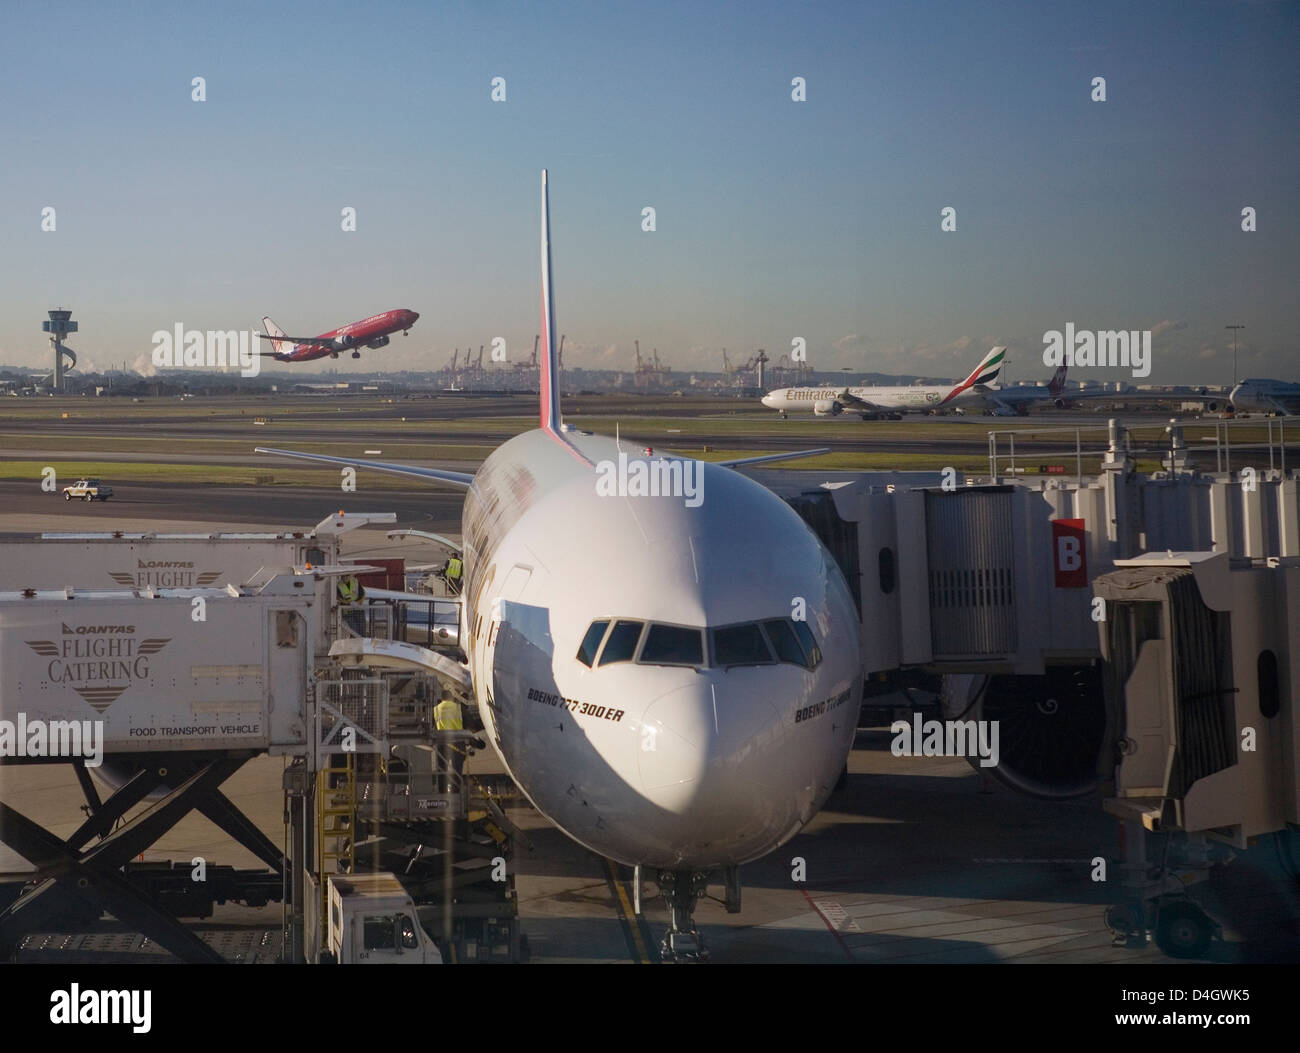 Boeing 777-300 ER jet airliner of Emirates Airline at gate, Emirates and Virgin Blue planes behind, Sydney Airport, - Stock Image